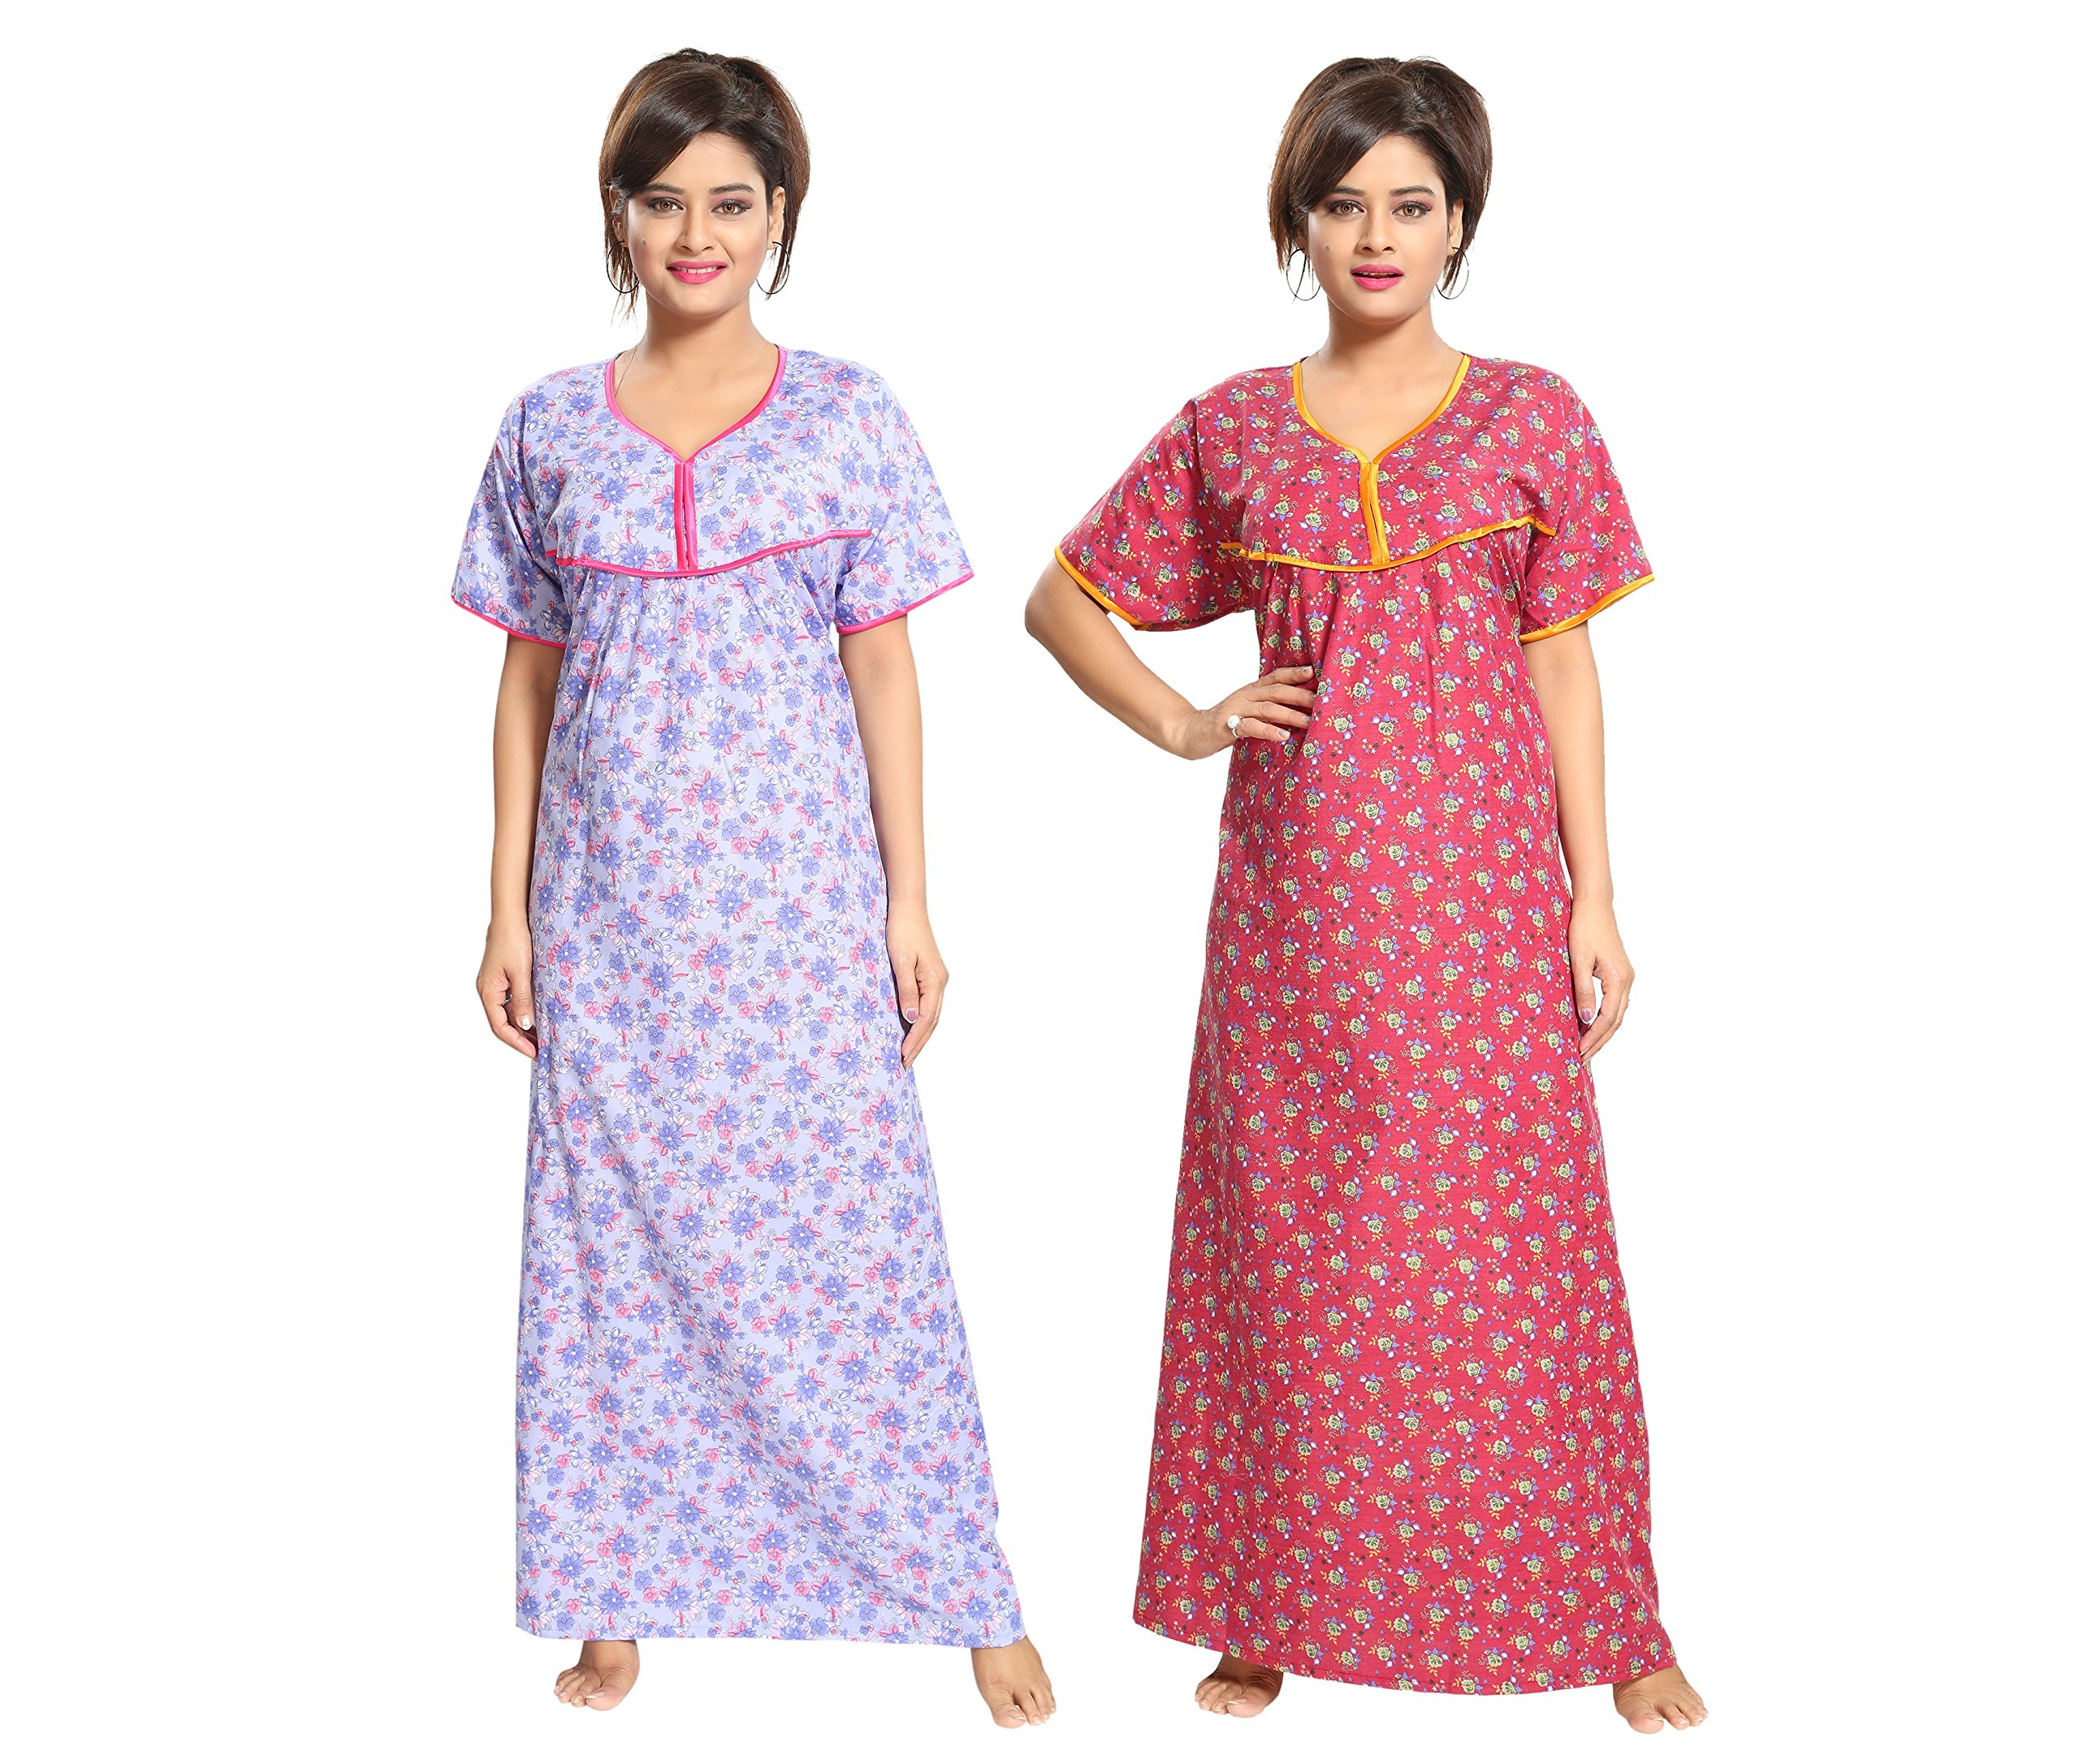 b6f5a21f14 TUCUTE Women's Cotton Beautiful Floral Print Nighty/Night Gown/Night ...